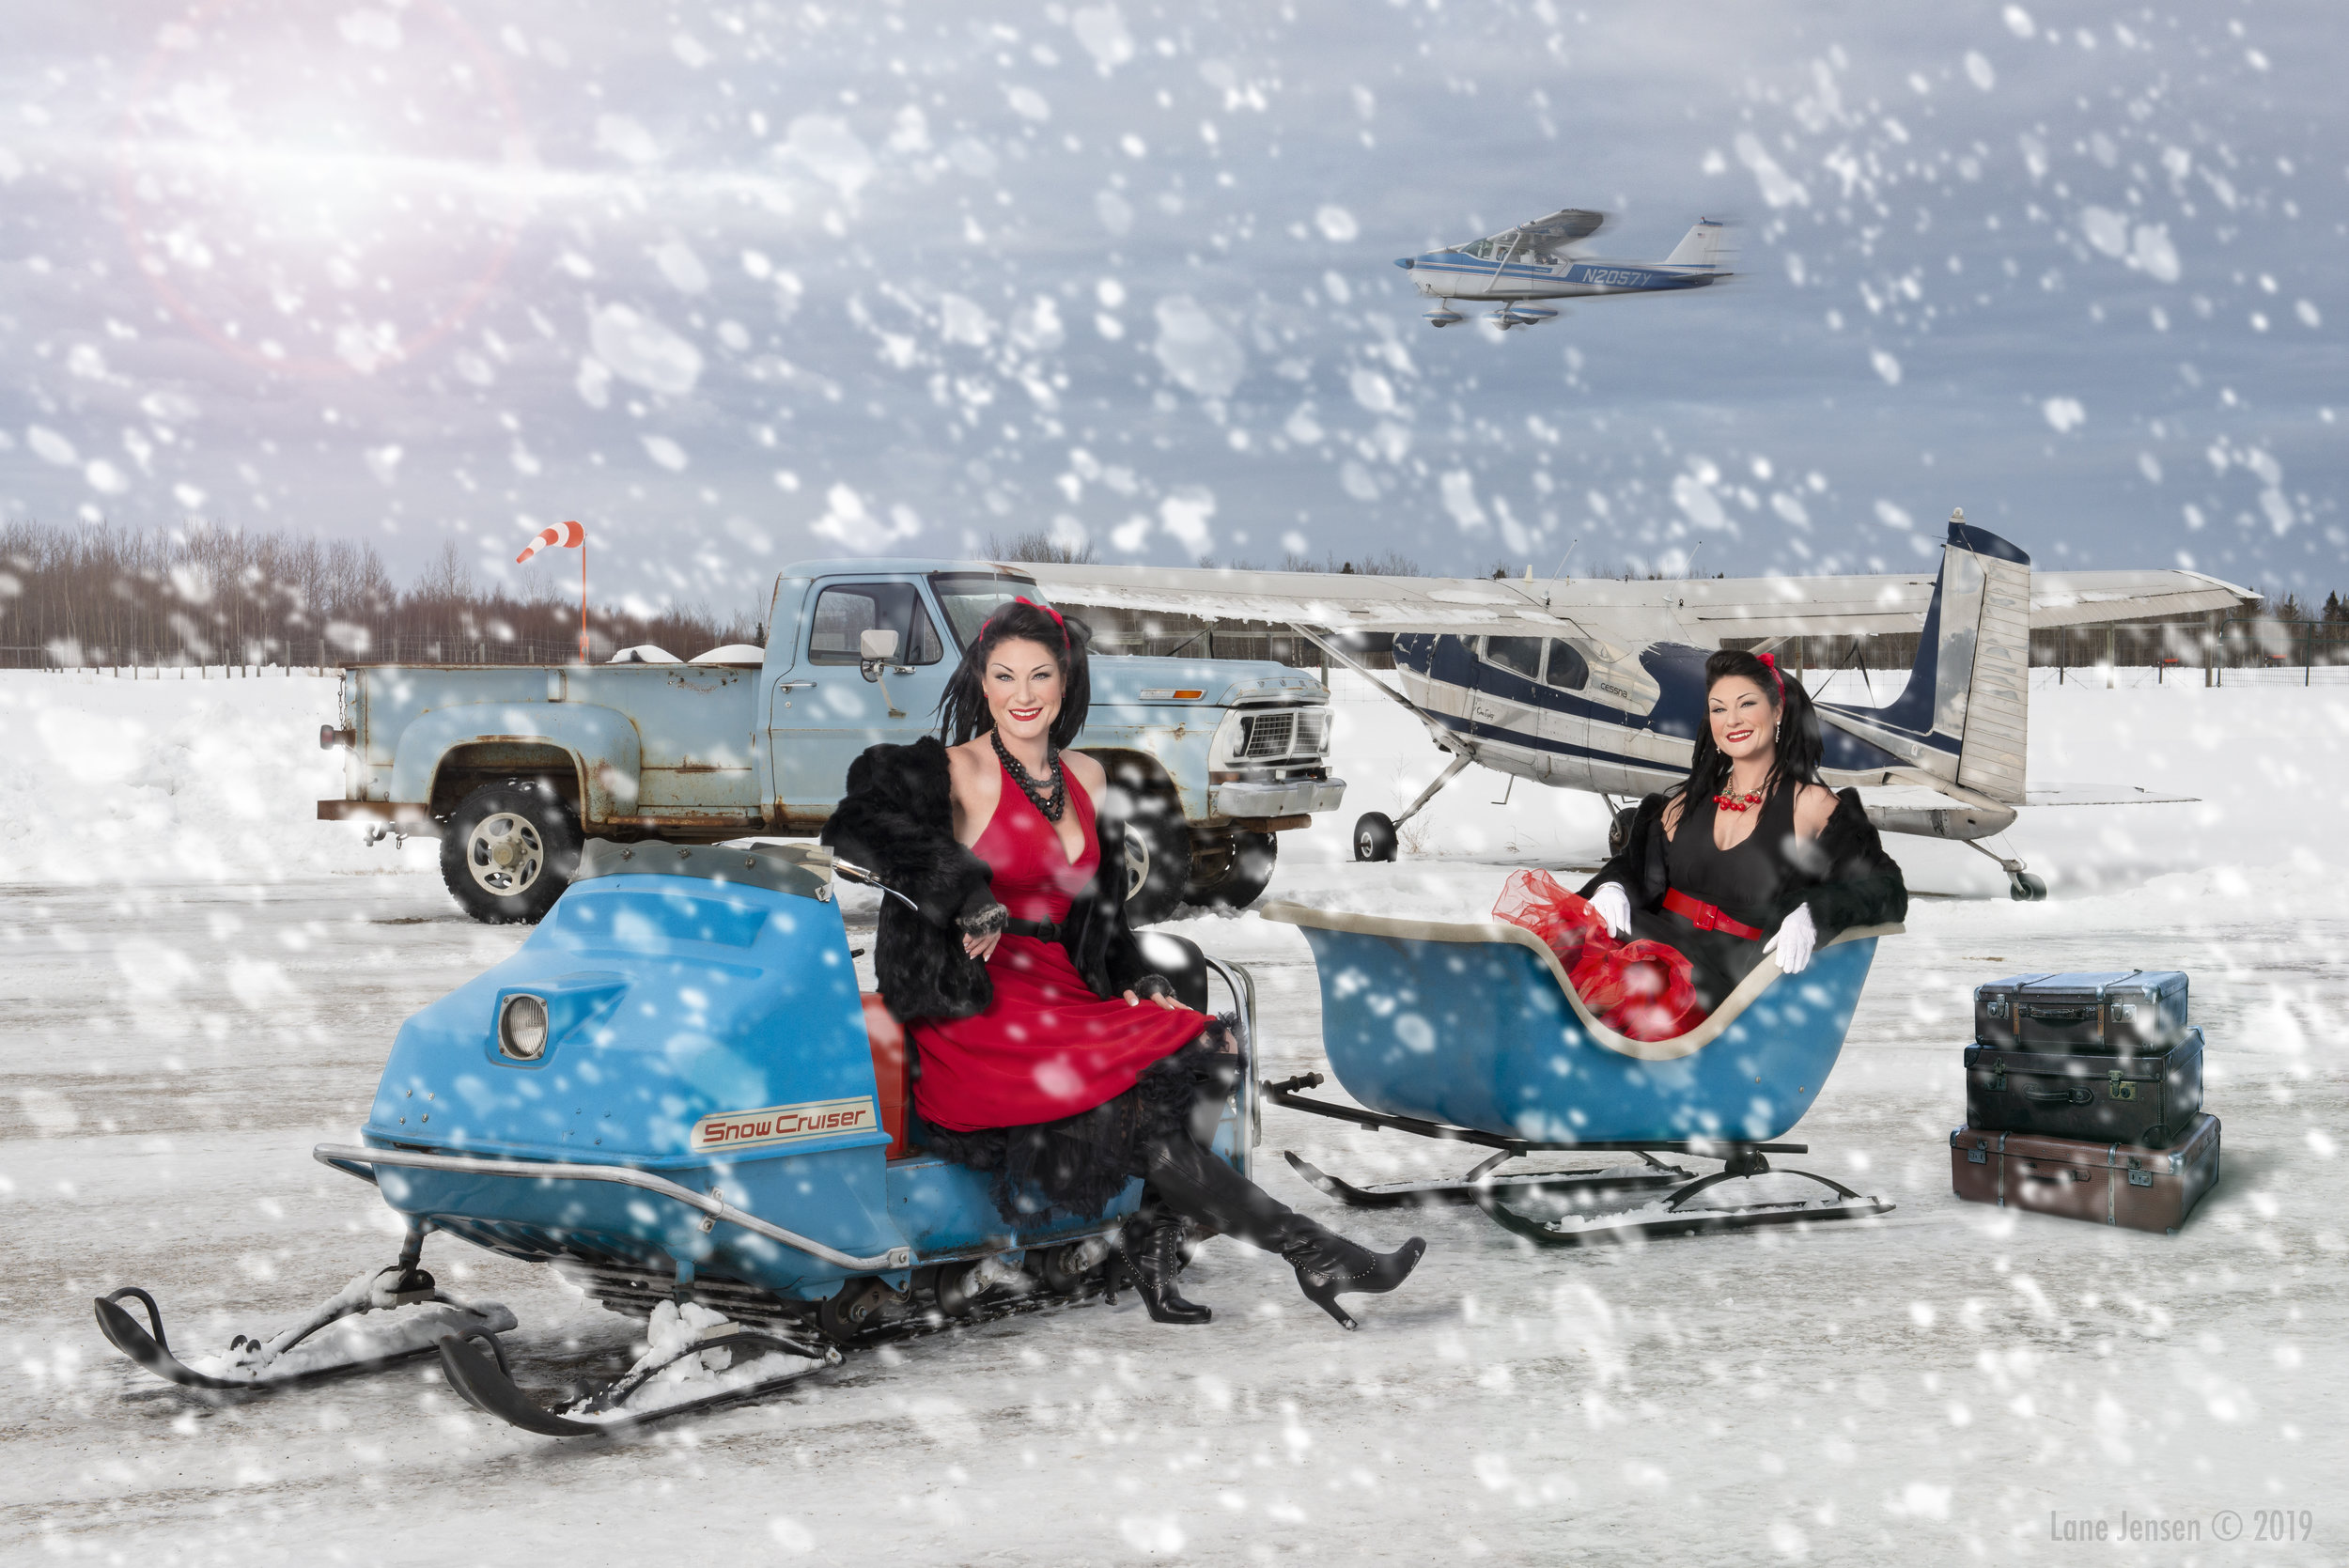 Pin up image done snow.jpg